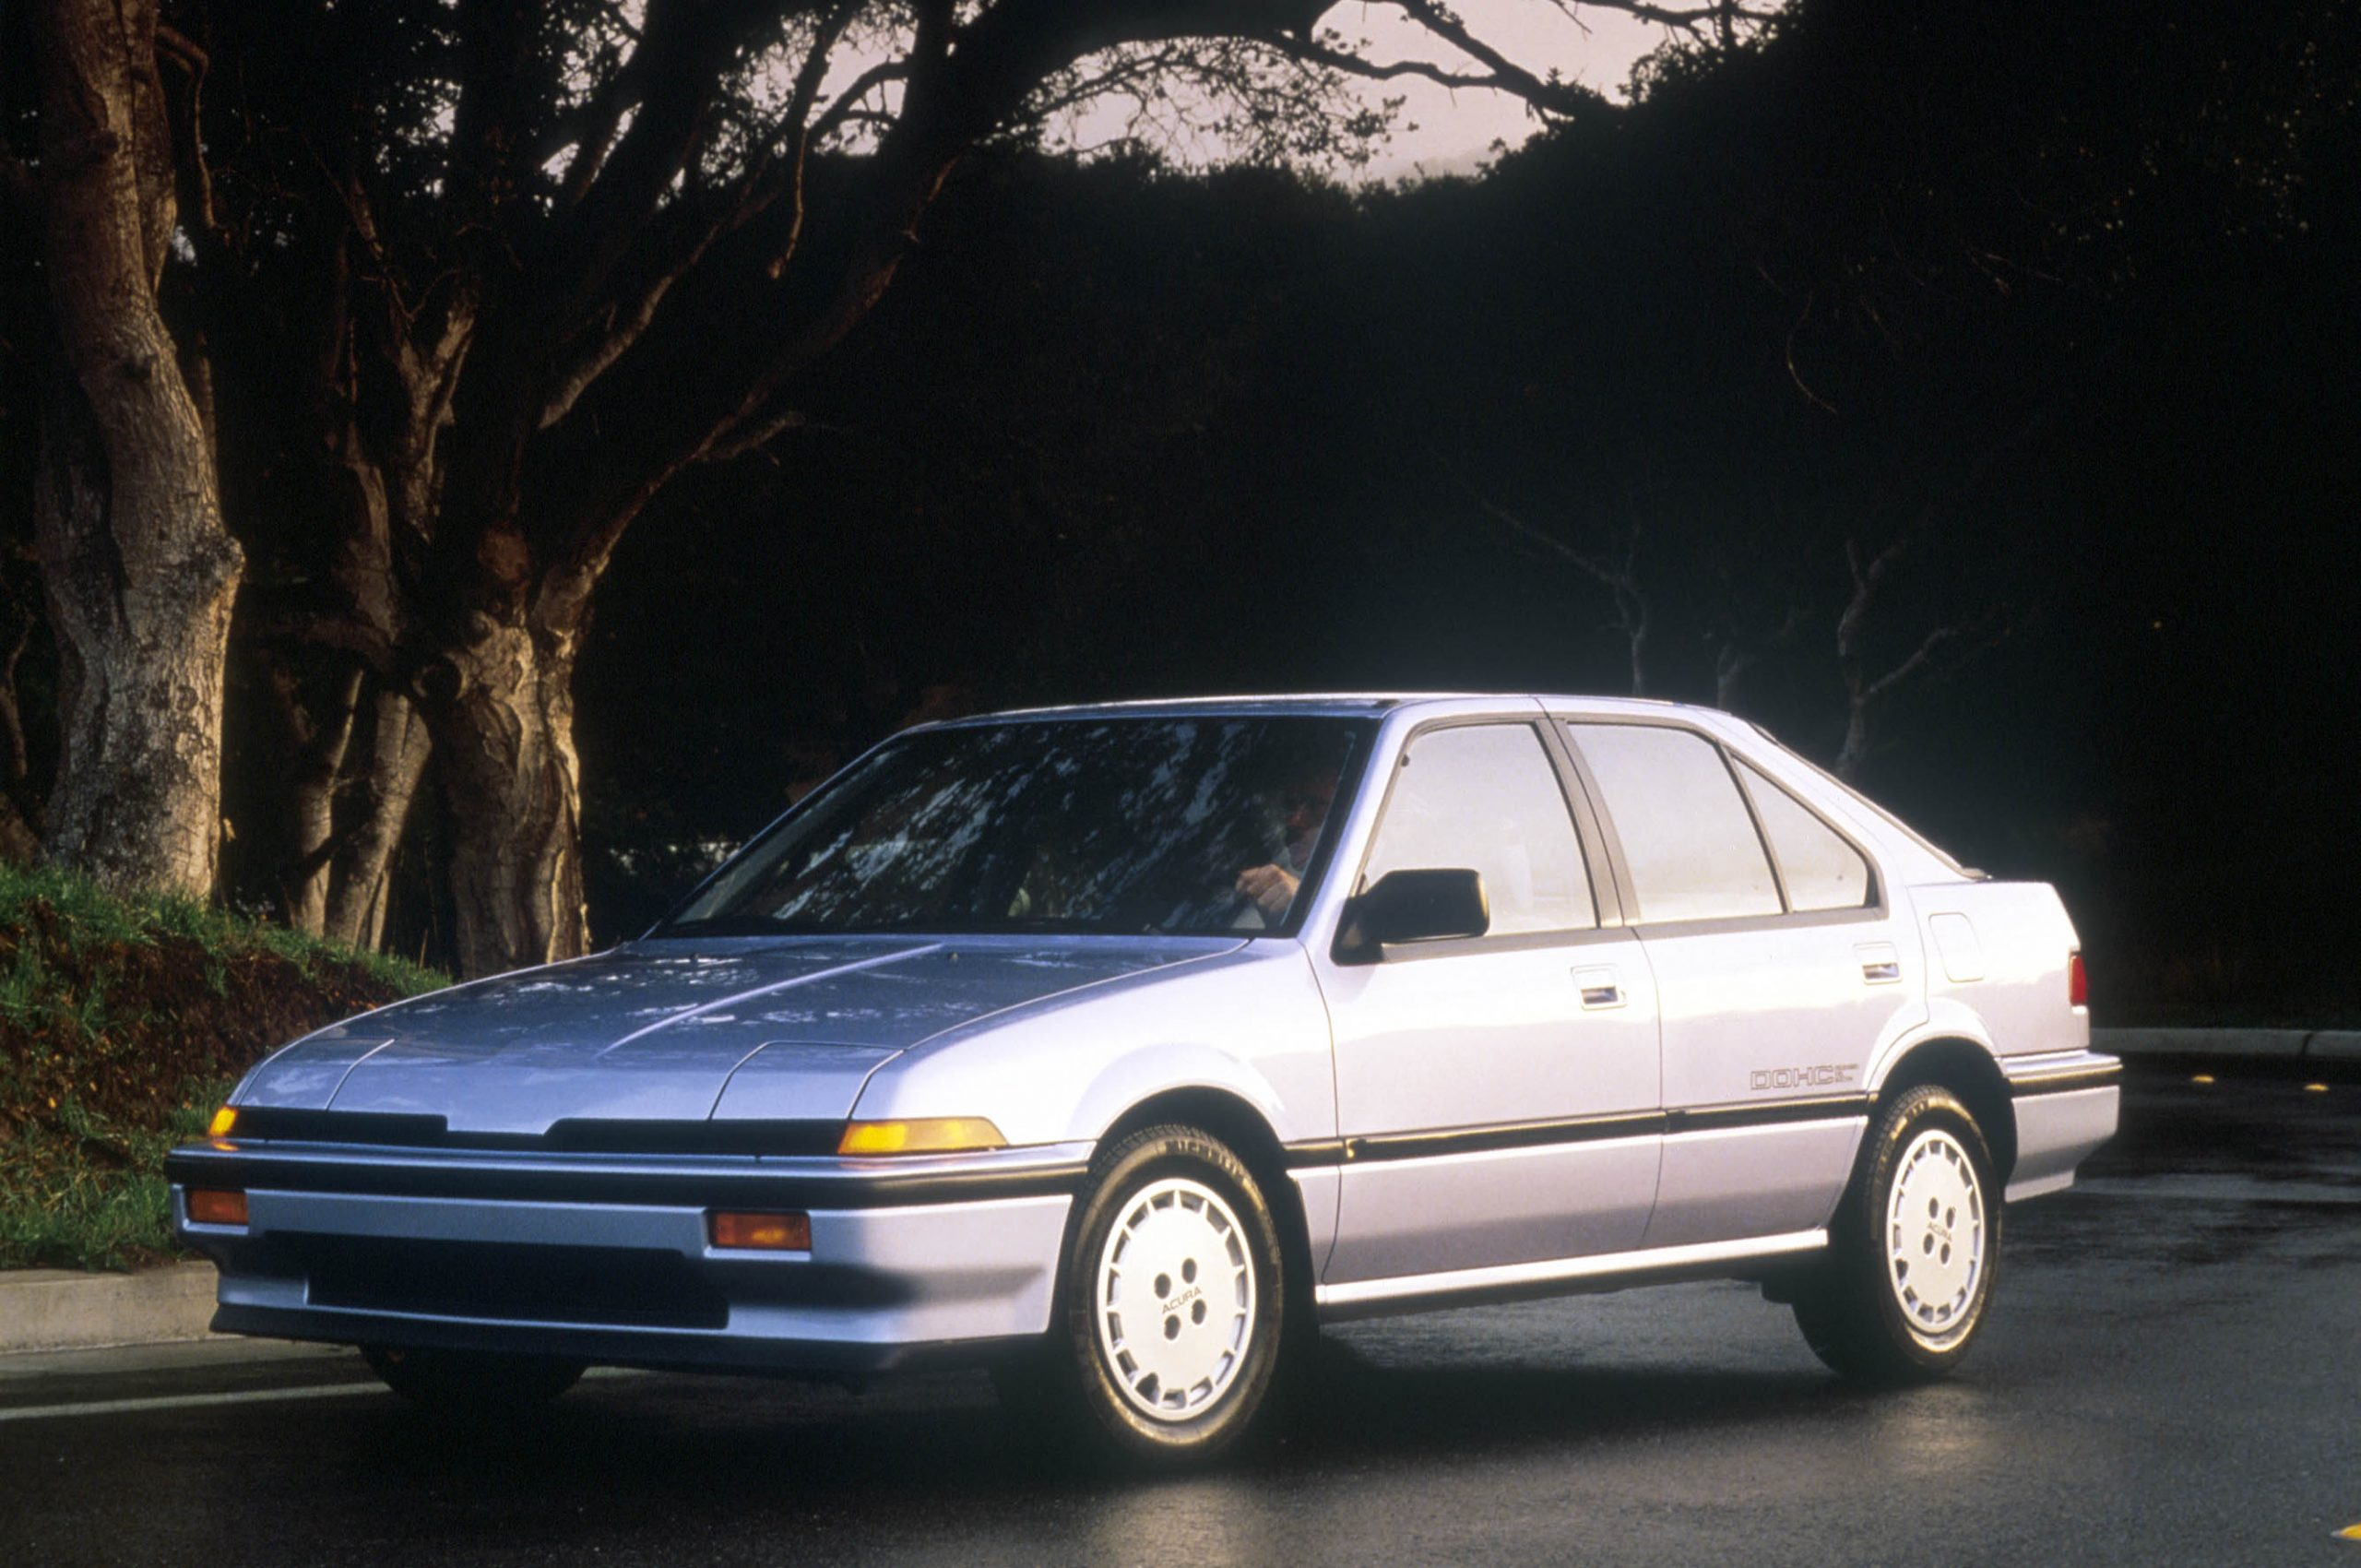 A silver 1986 Acura Integra RS shot from the 3/4 angle on a wet city street